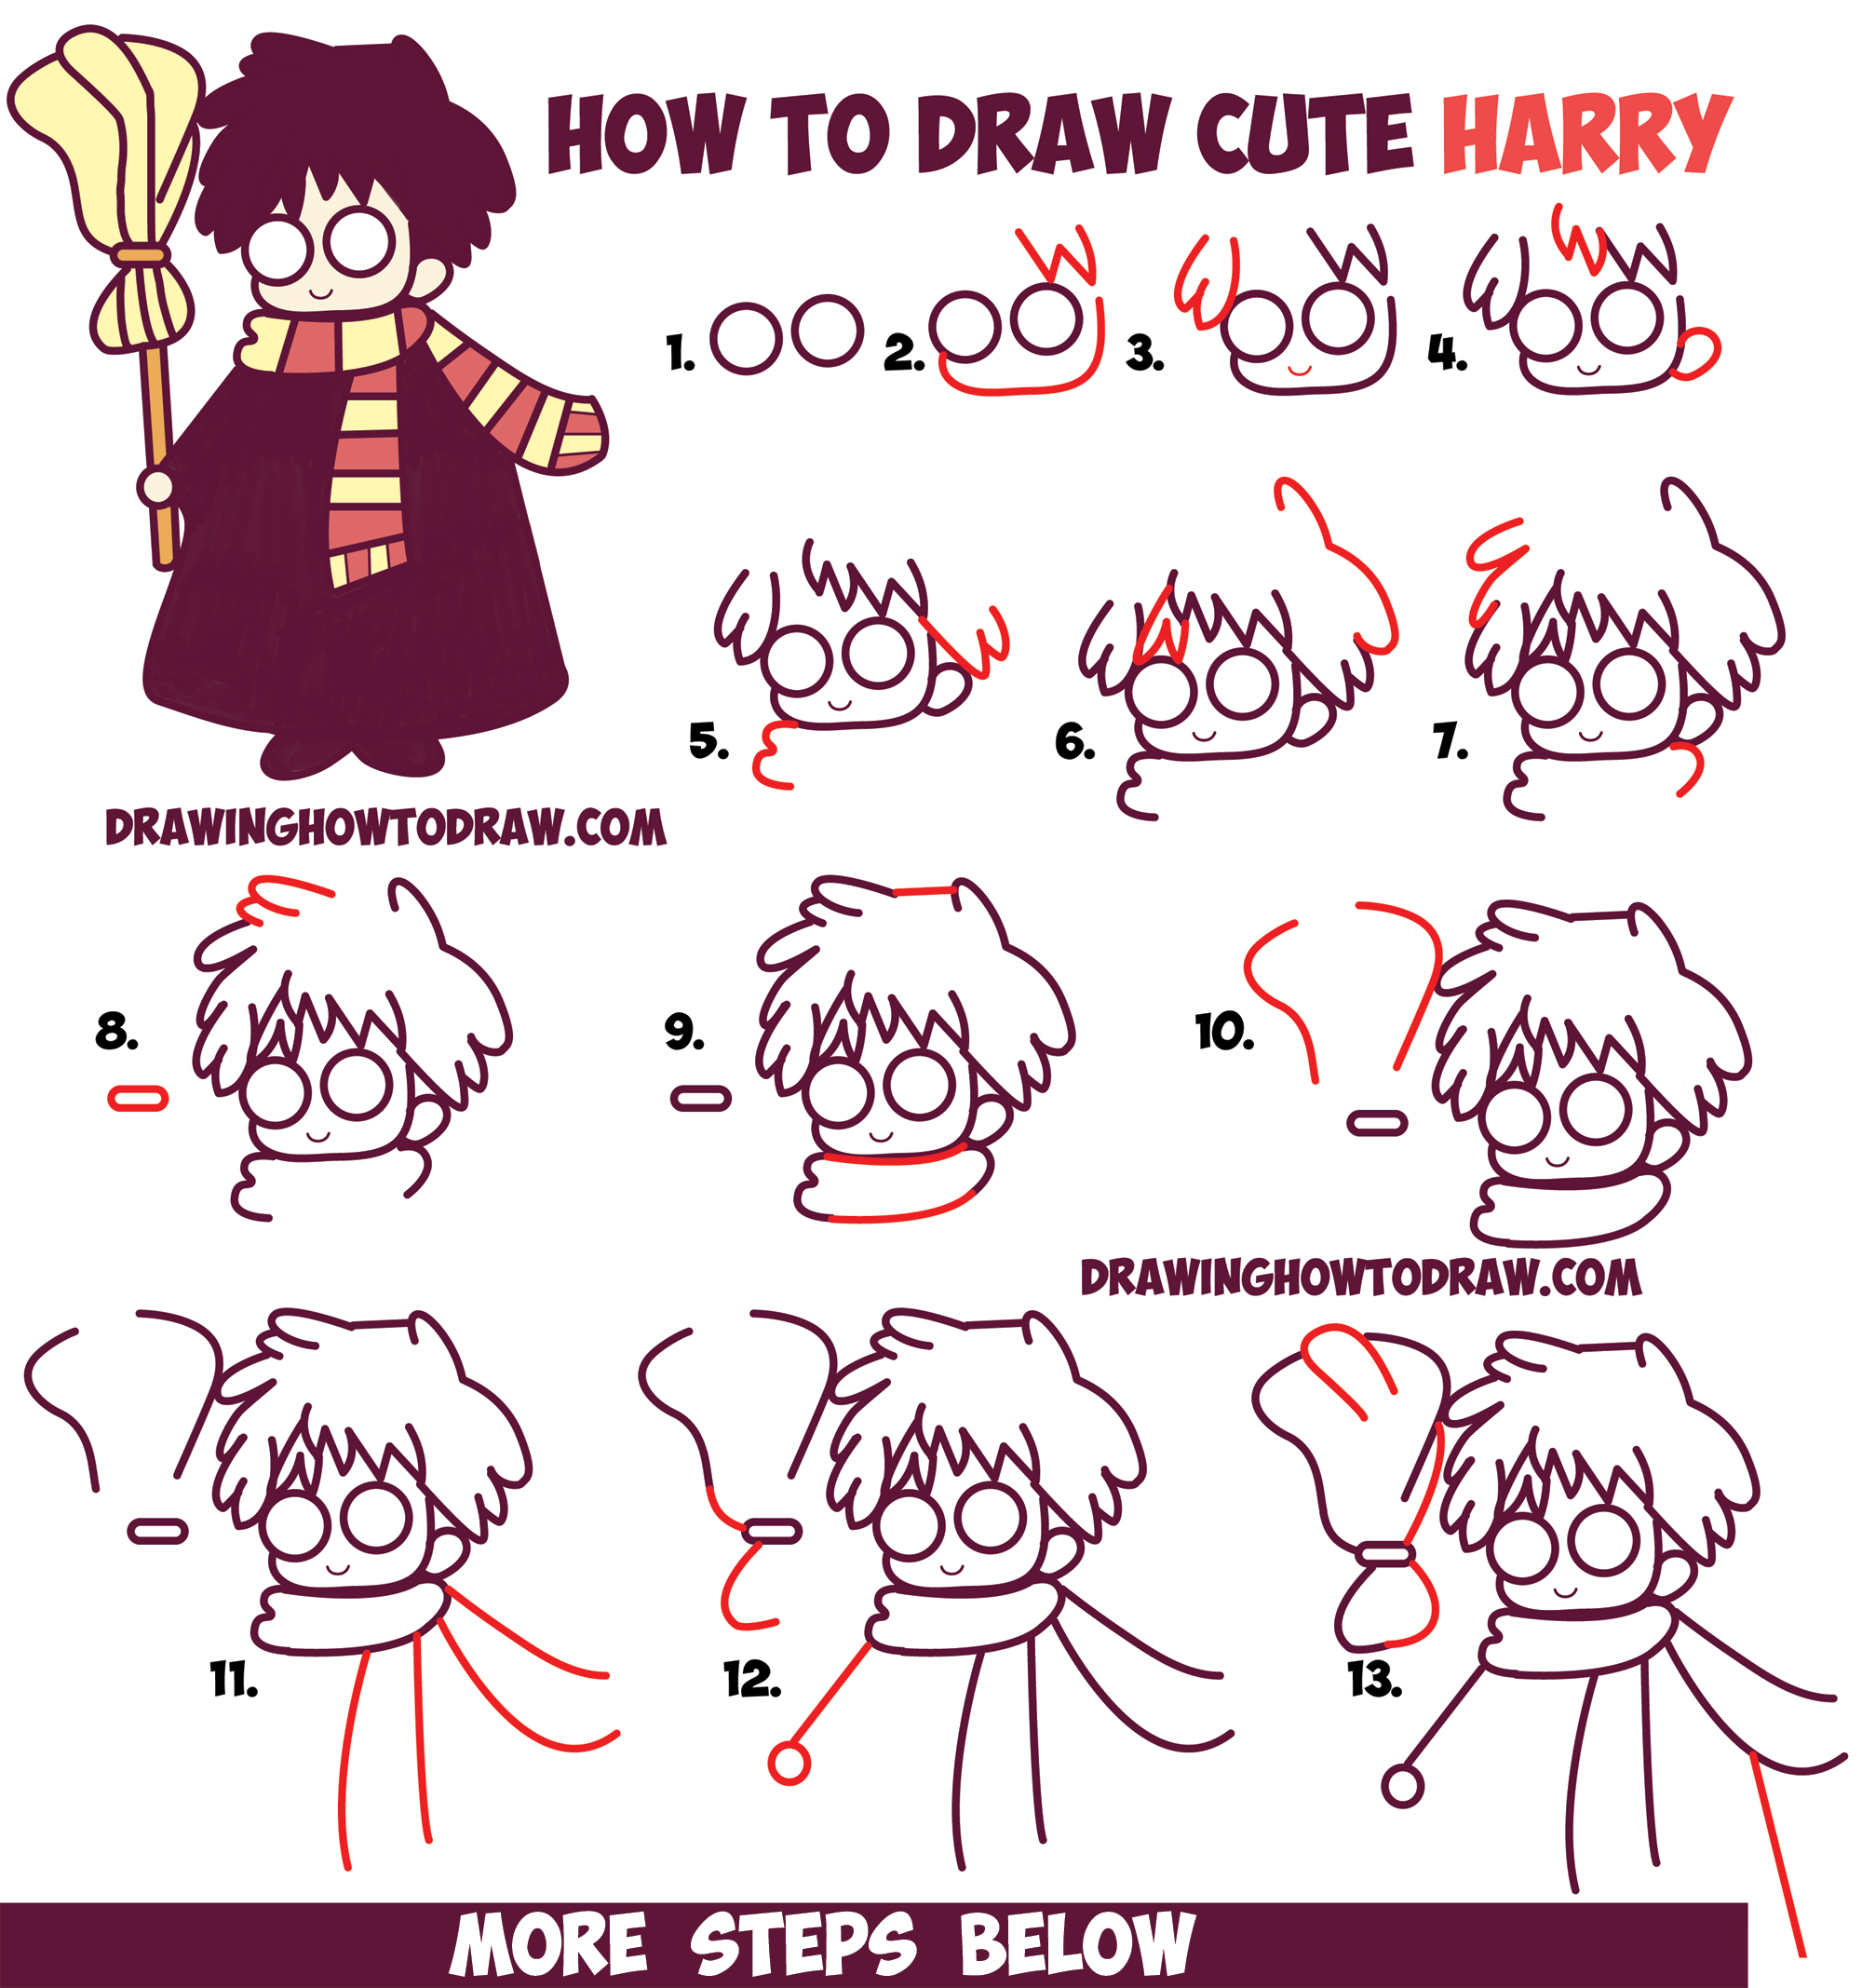 How To Draw Cute Harry Potter (Chibi / Kawaii) Easy Step